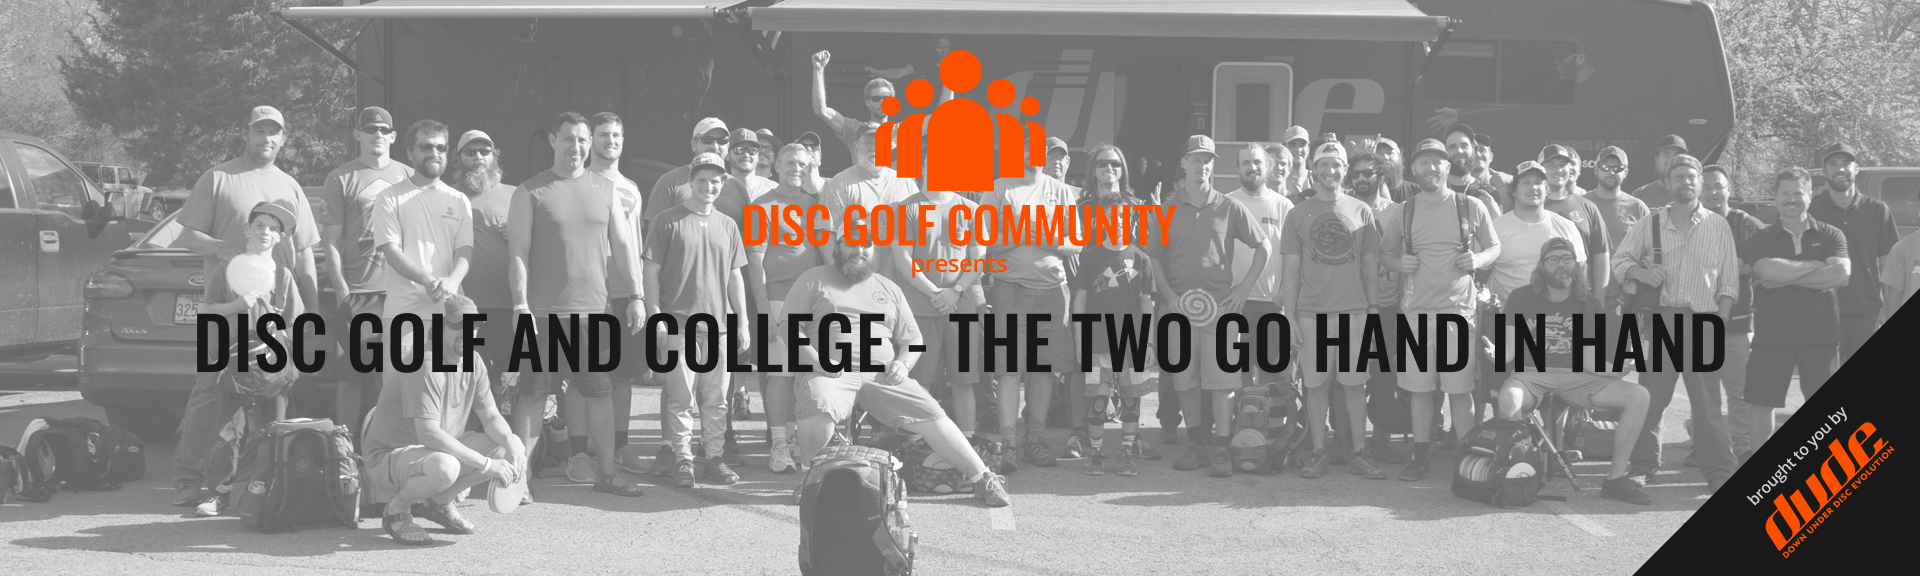 Dude Clothing Disc Golf Community College and Disc Golf go hand in hand